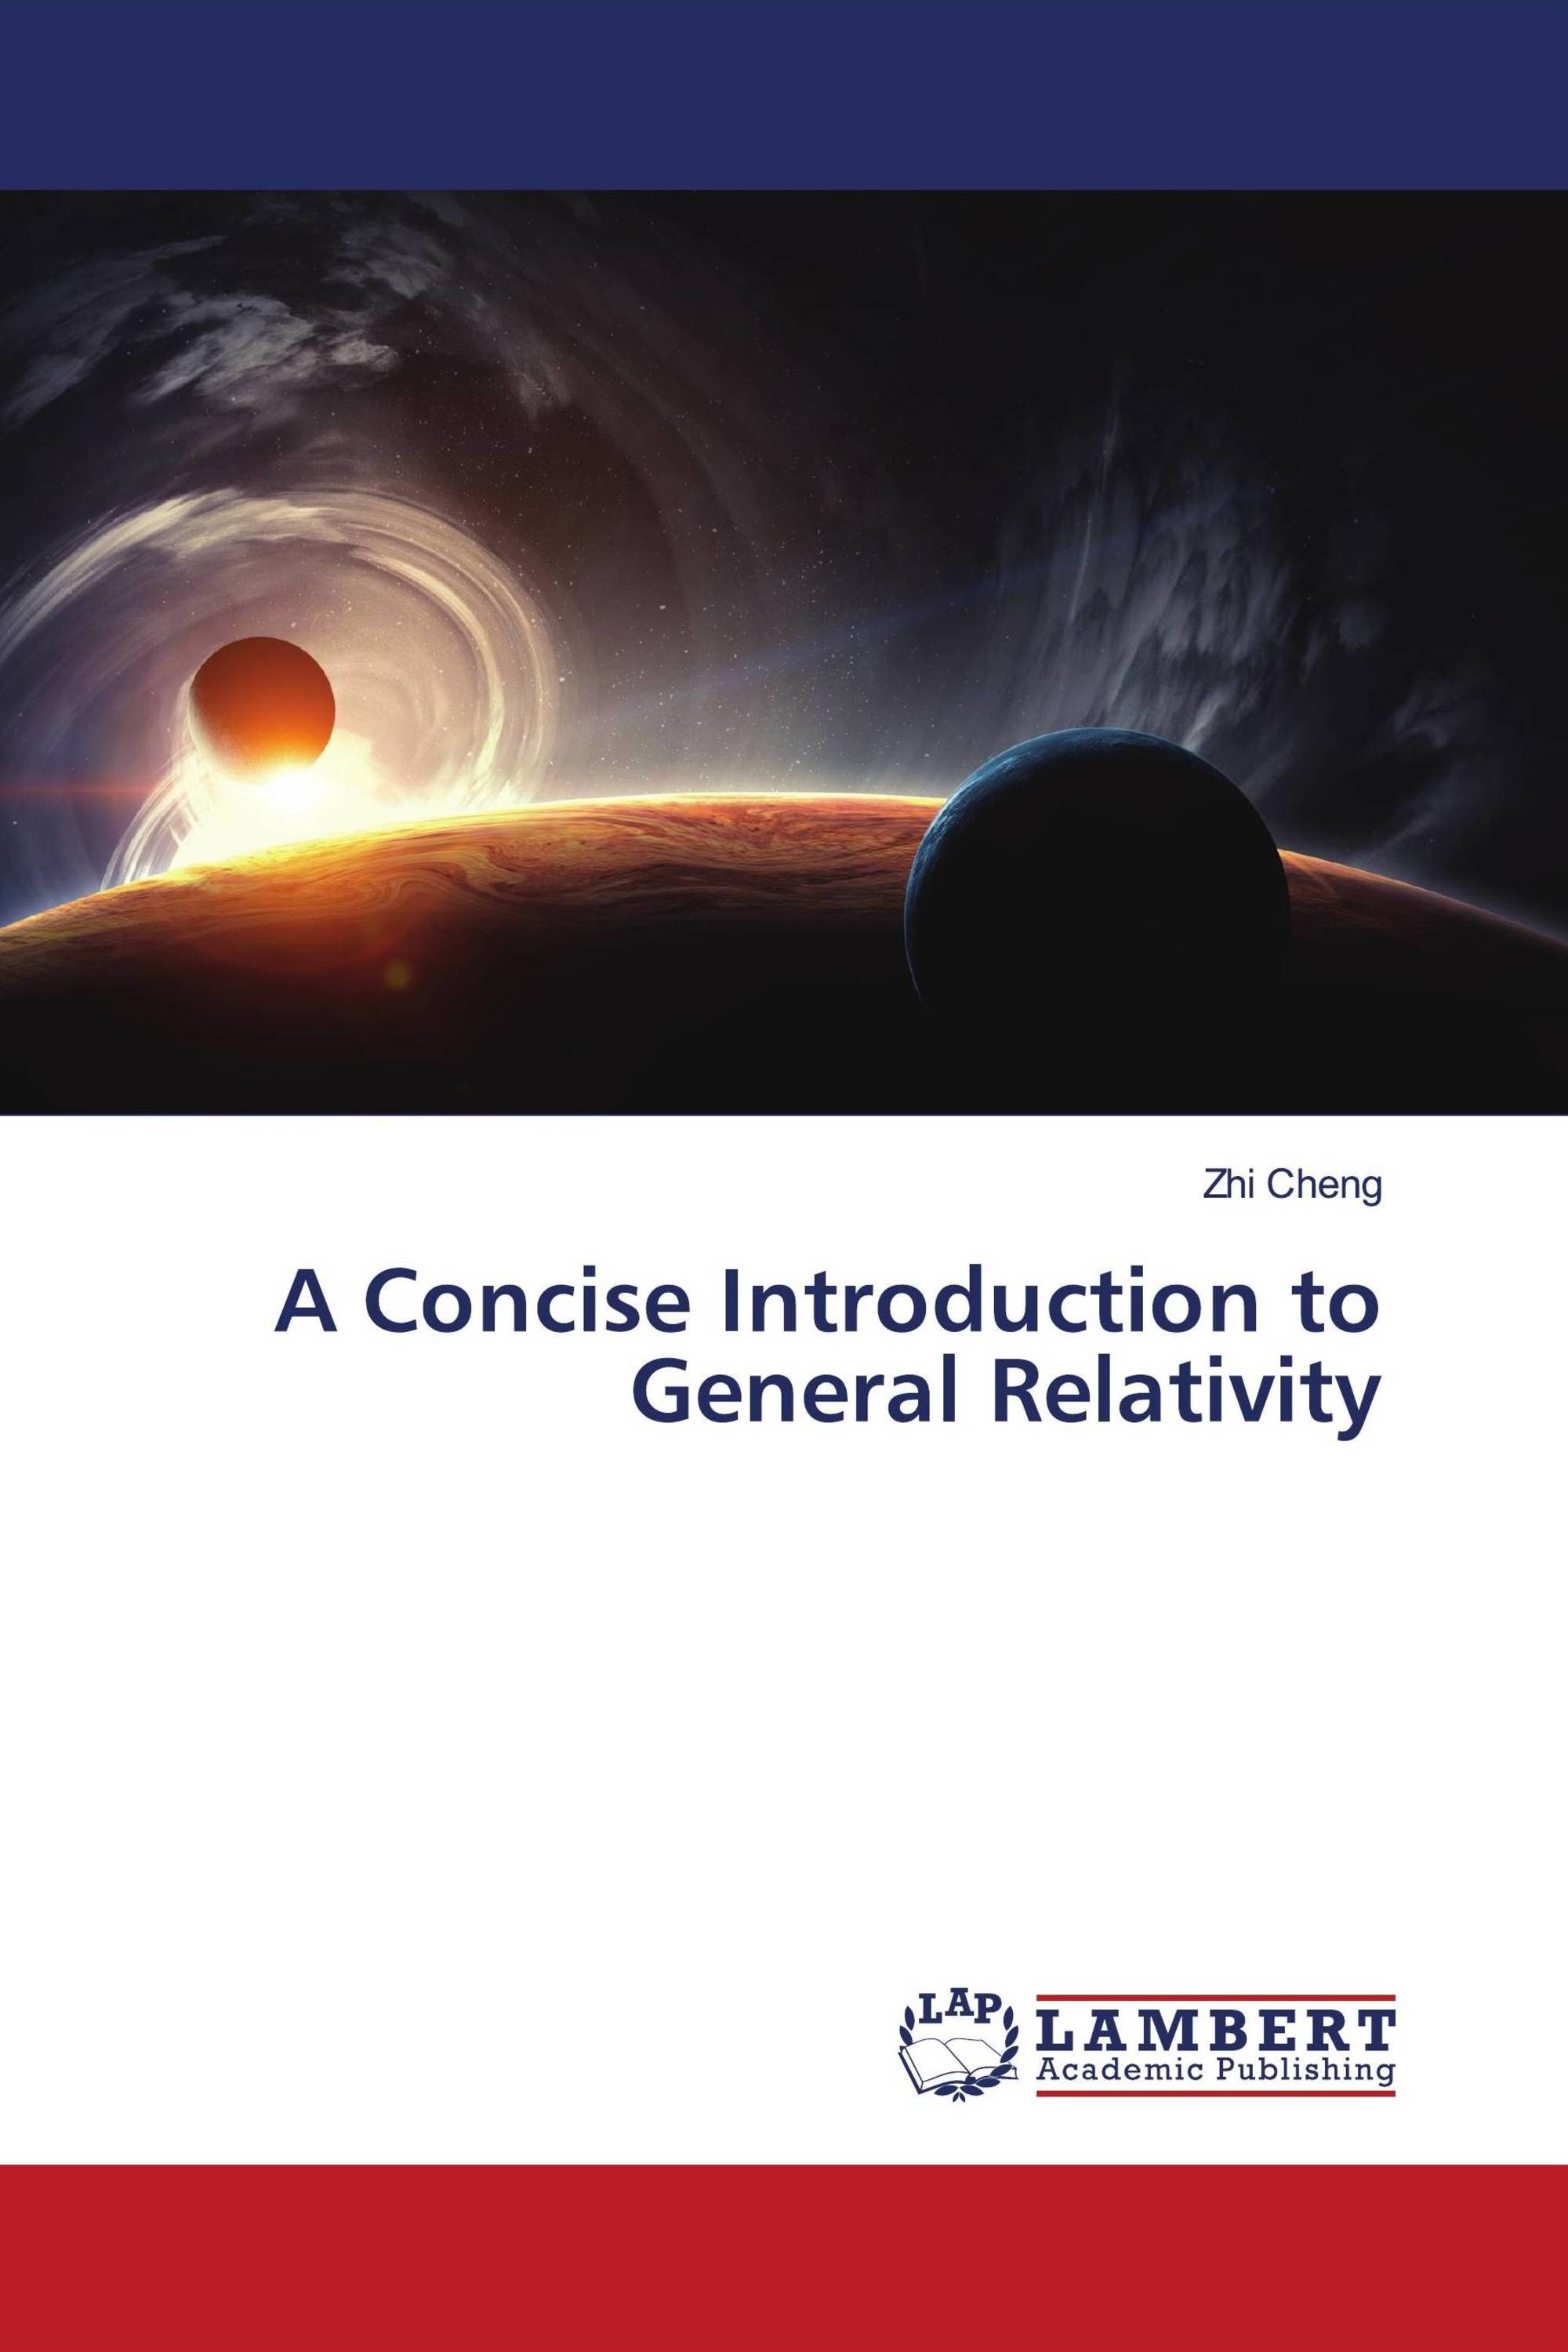 A Concise Introduction to General Relativity